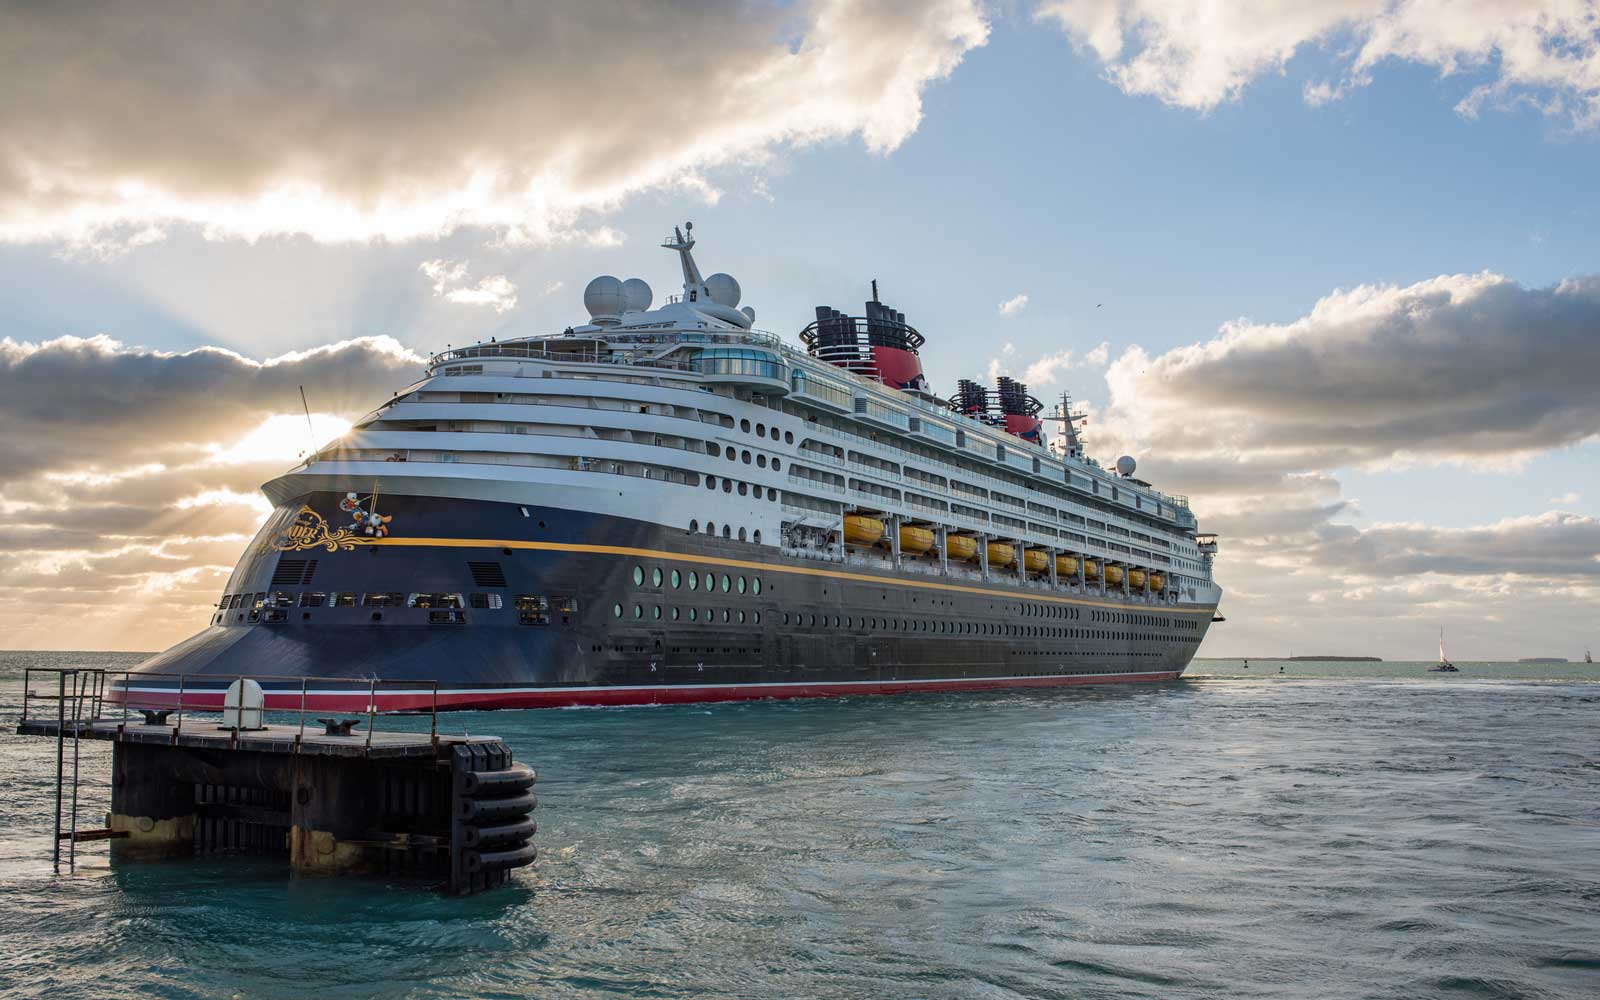 Disney Cruise Line Just Announced New Cruises for 2019 — Here's When You'll Need to Book